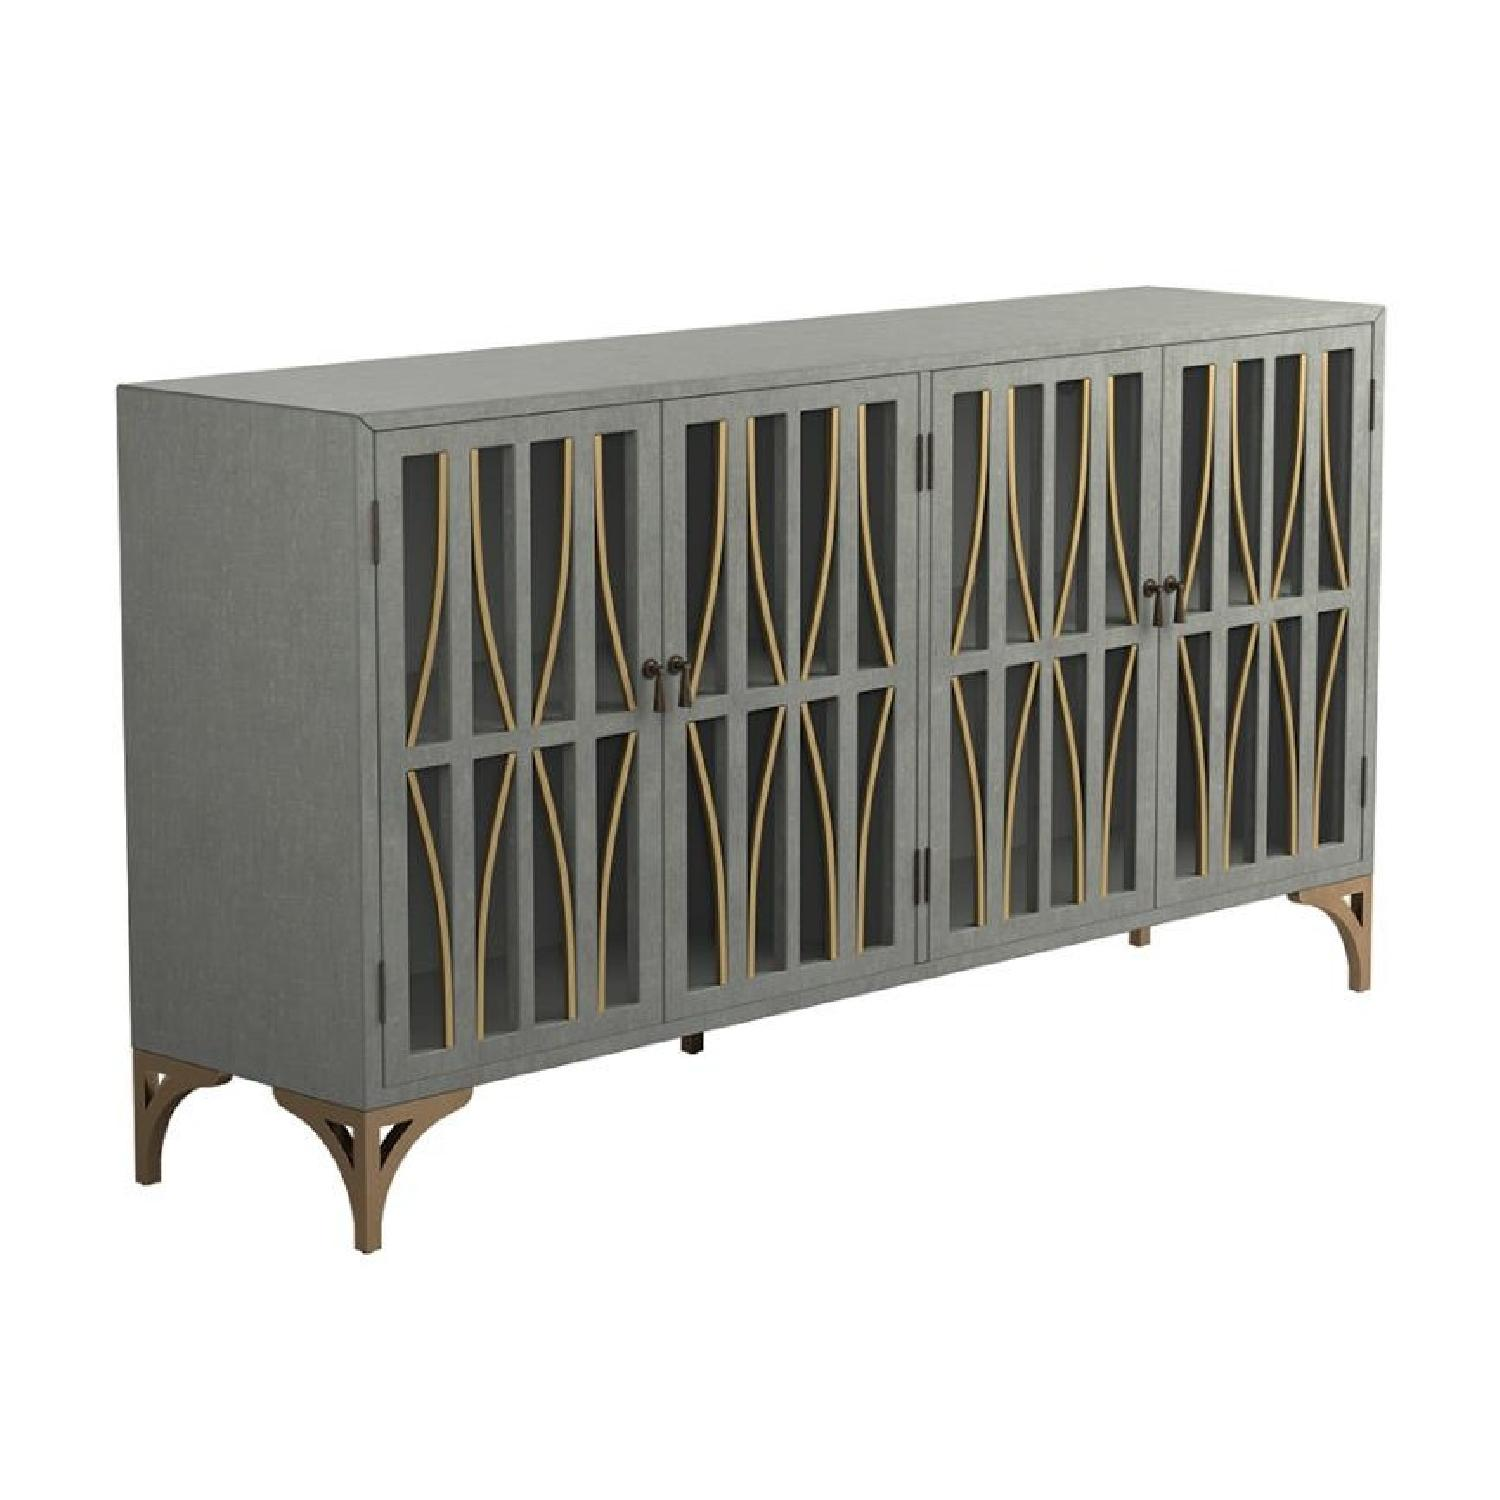 Contemporary Accent Cabinet In Grey Green w/ Bronze Hardware - image-0